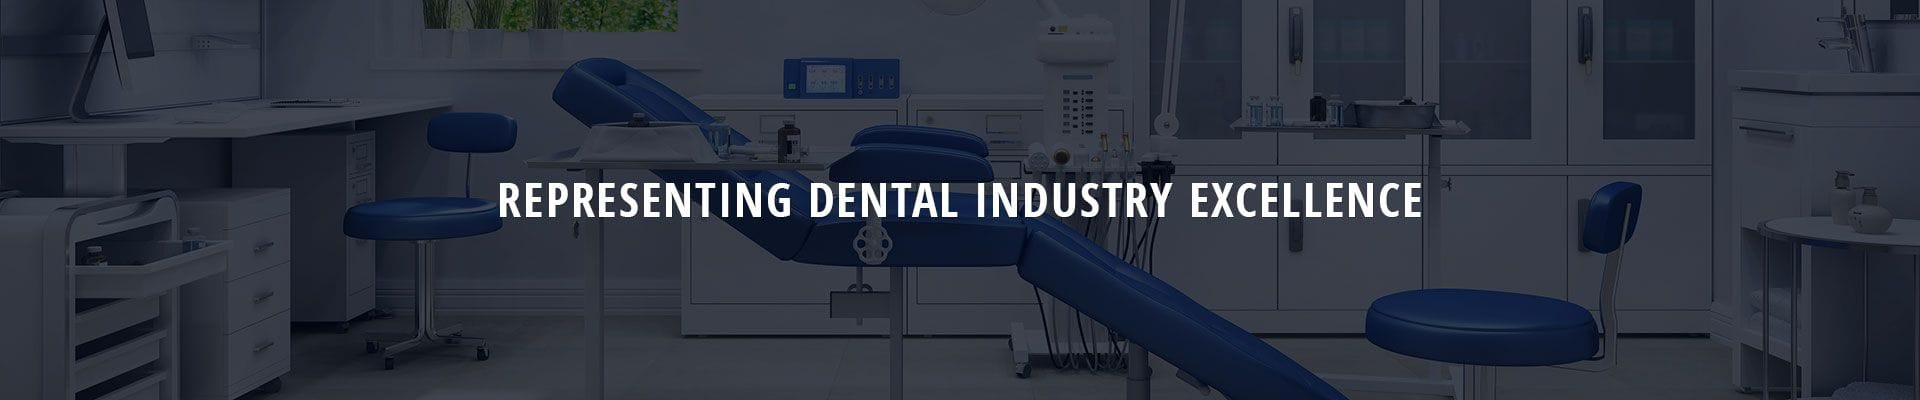 2020 Awards Winners | Australian Dental Industry Association